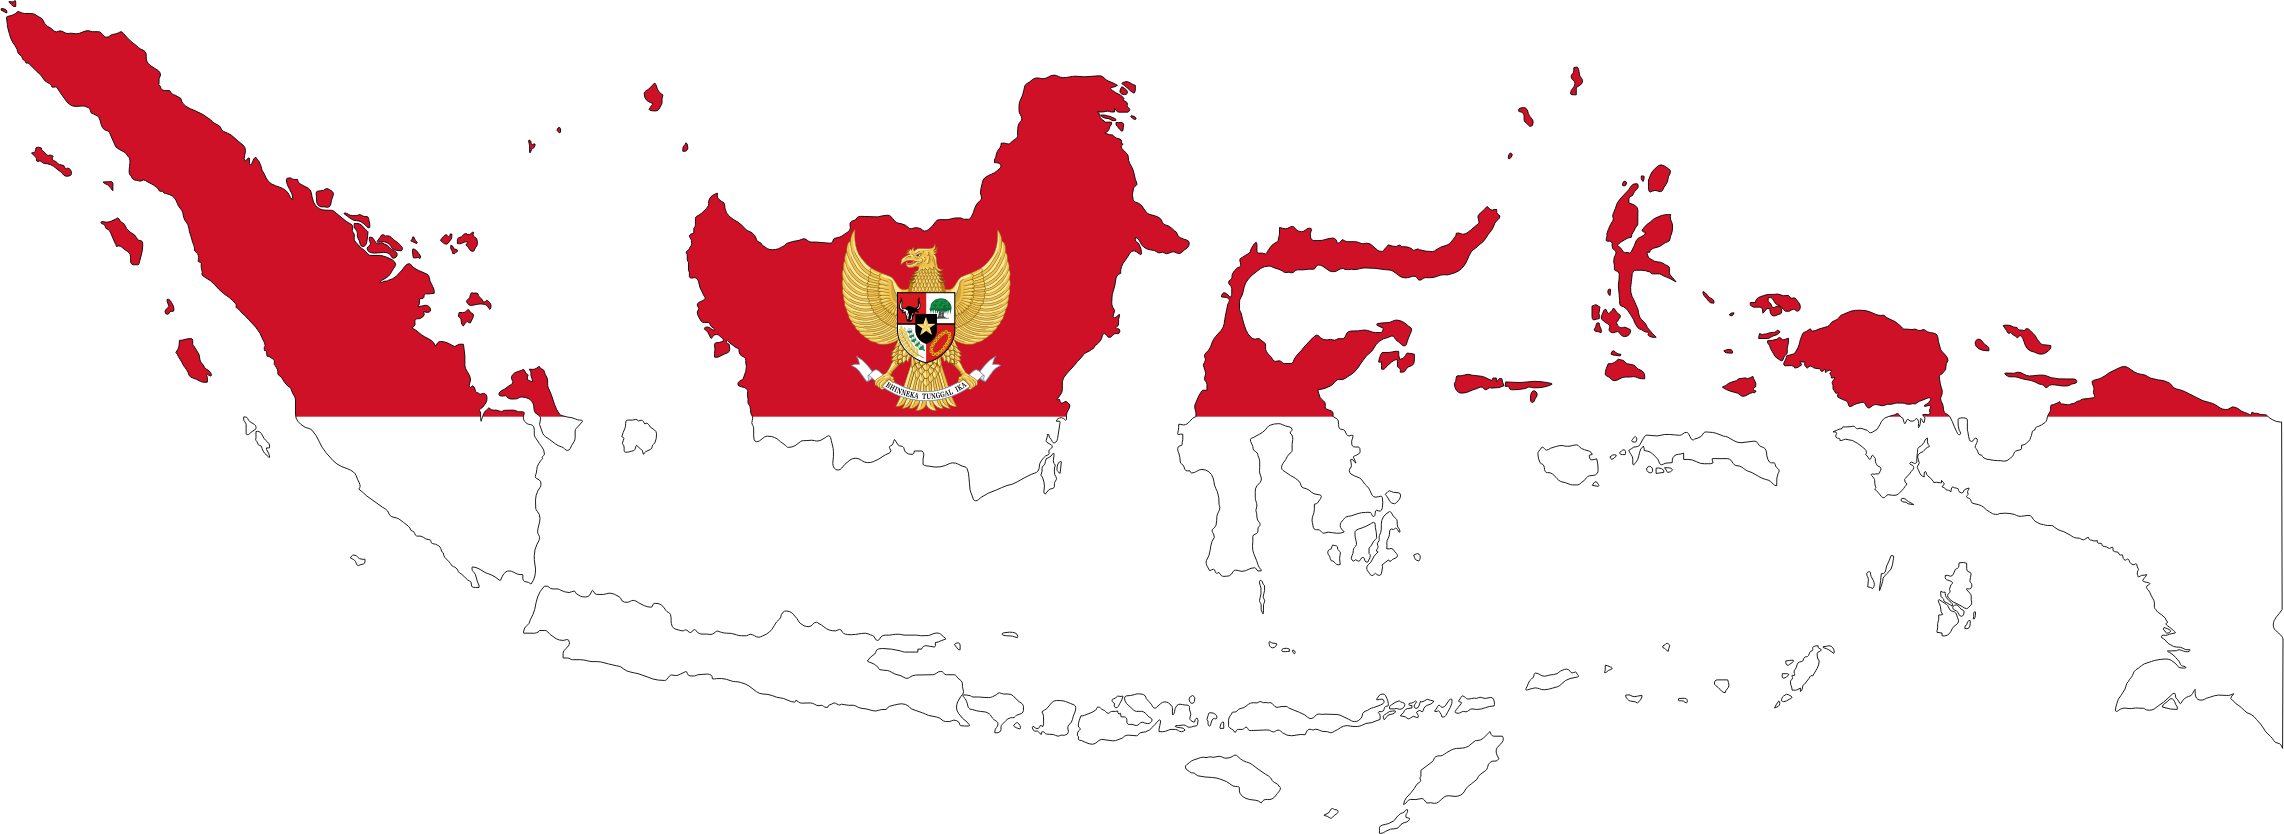 Indonesia Map Flag With Stroke And Coat Of Arms by GDJ